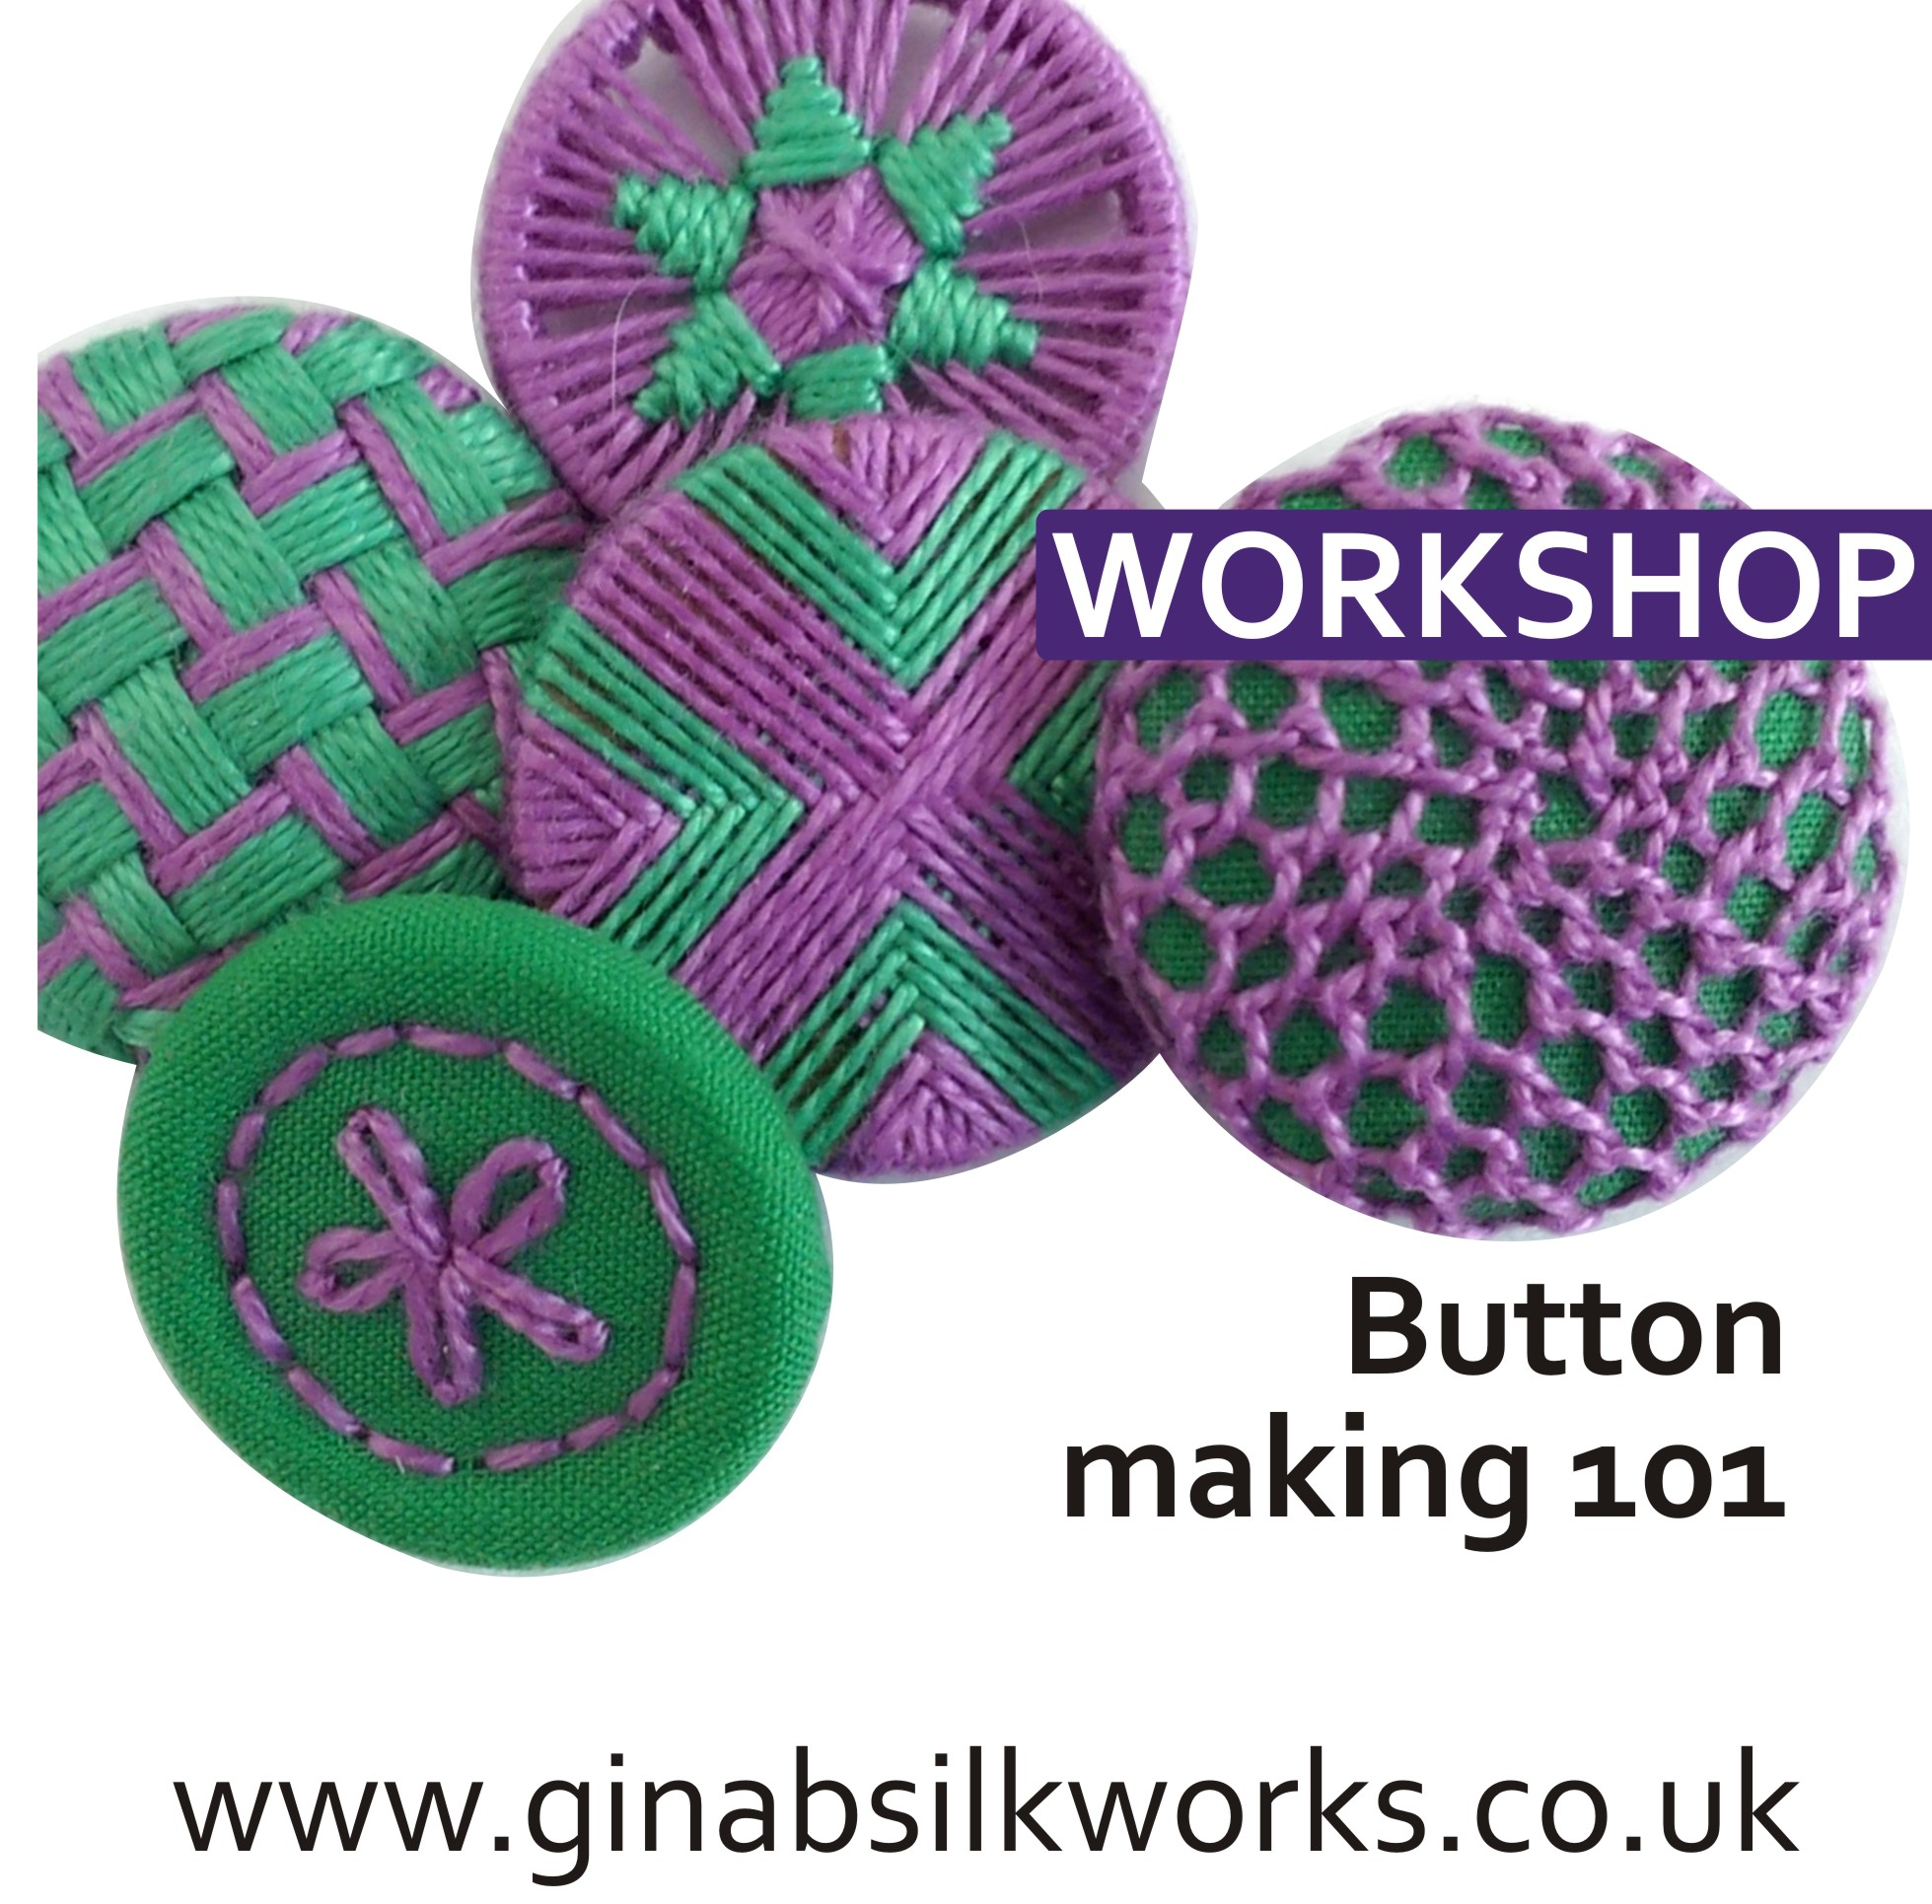 Button Making 101 Workshop